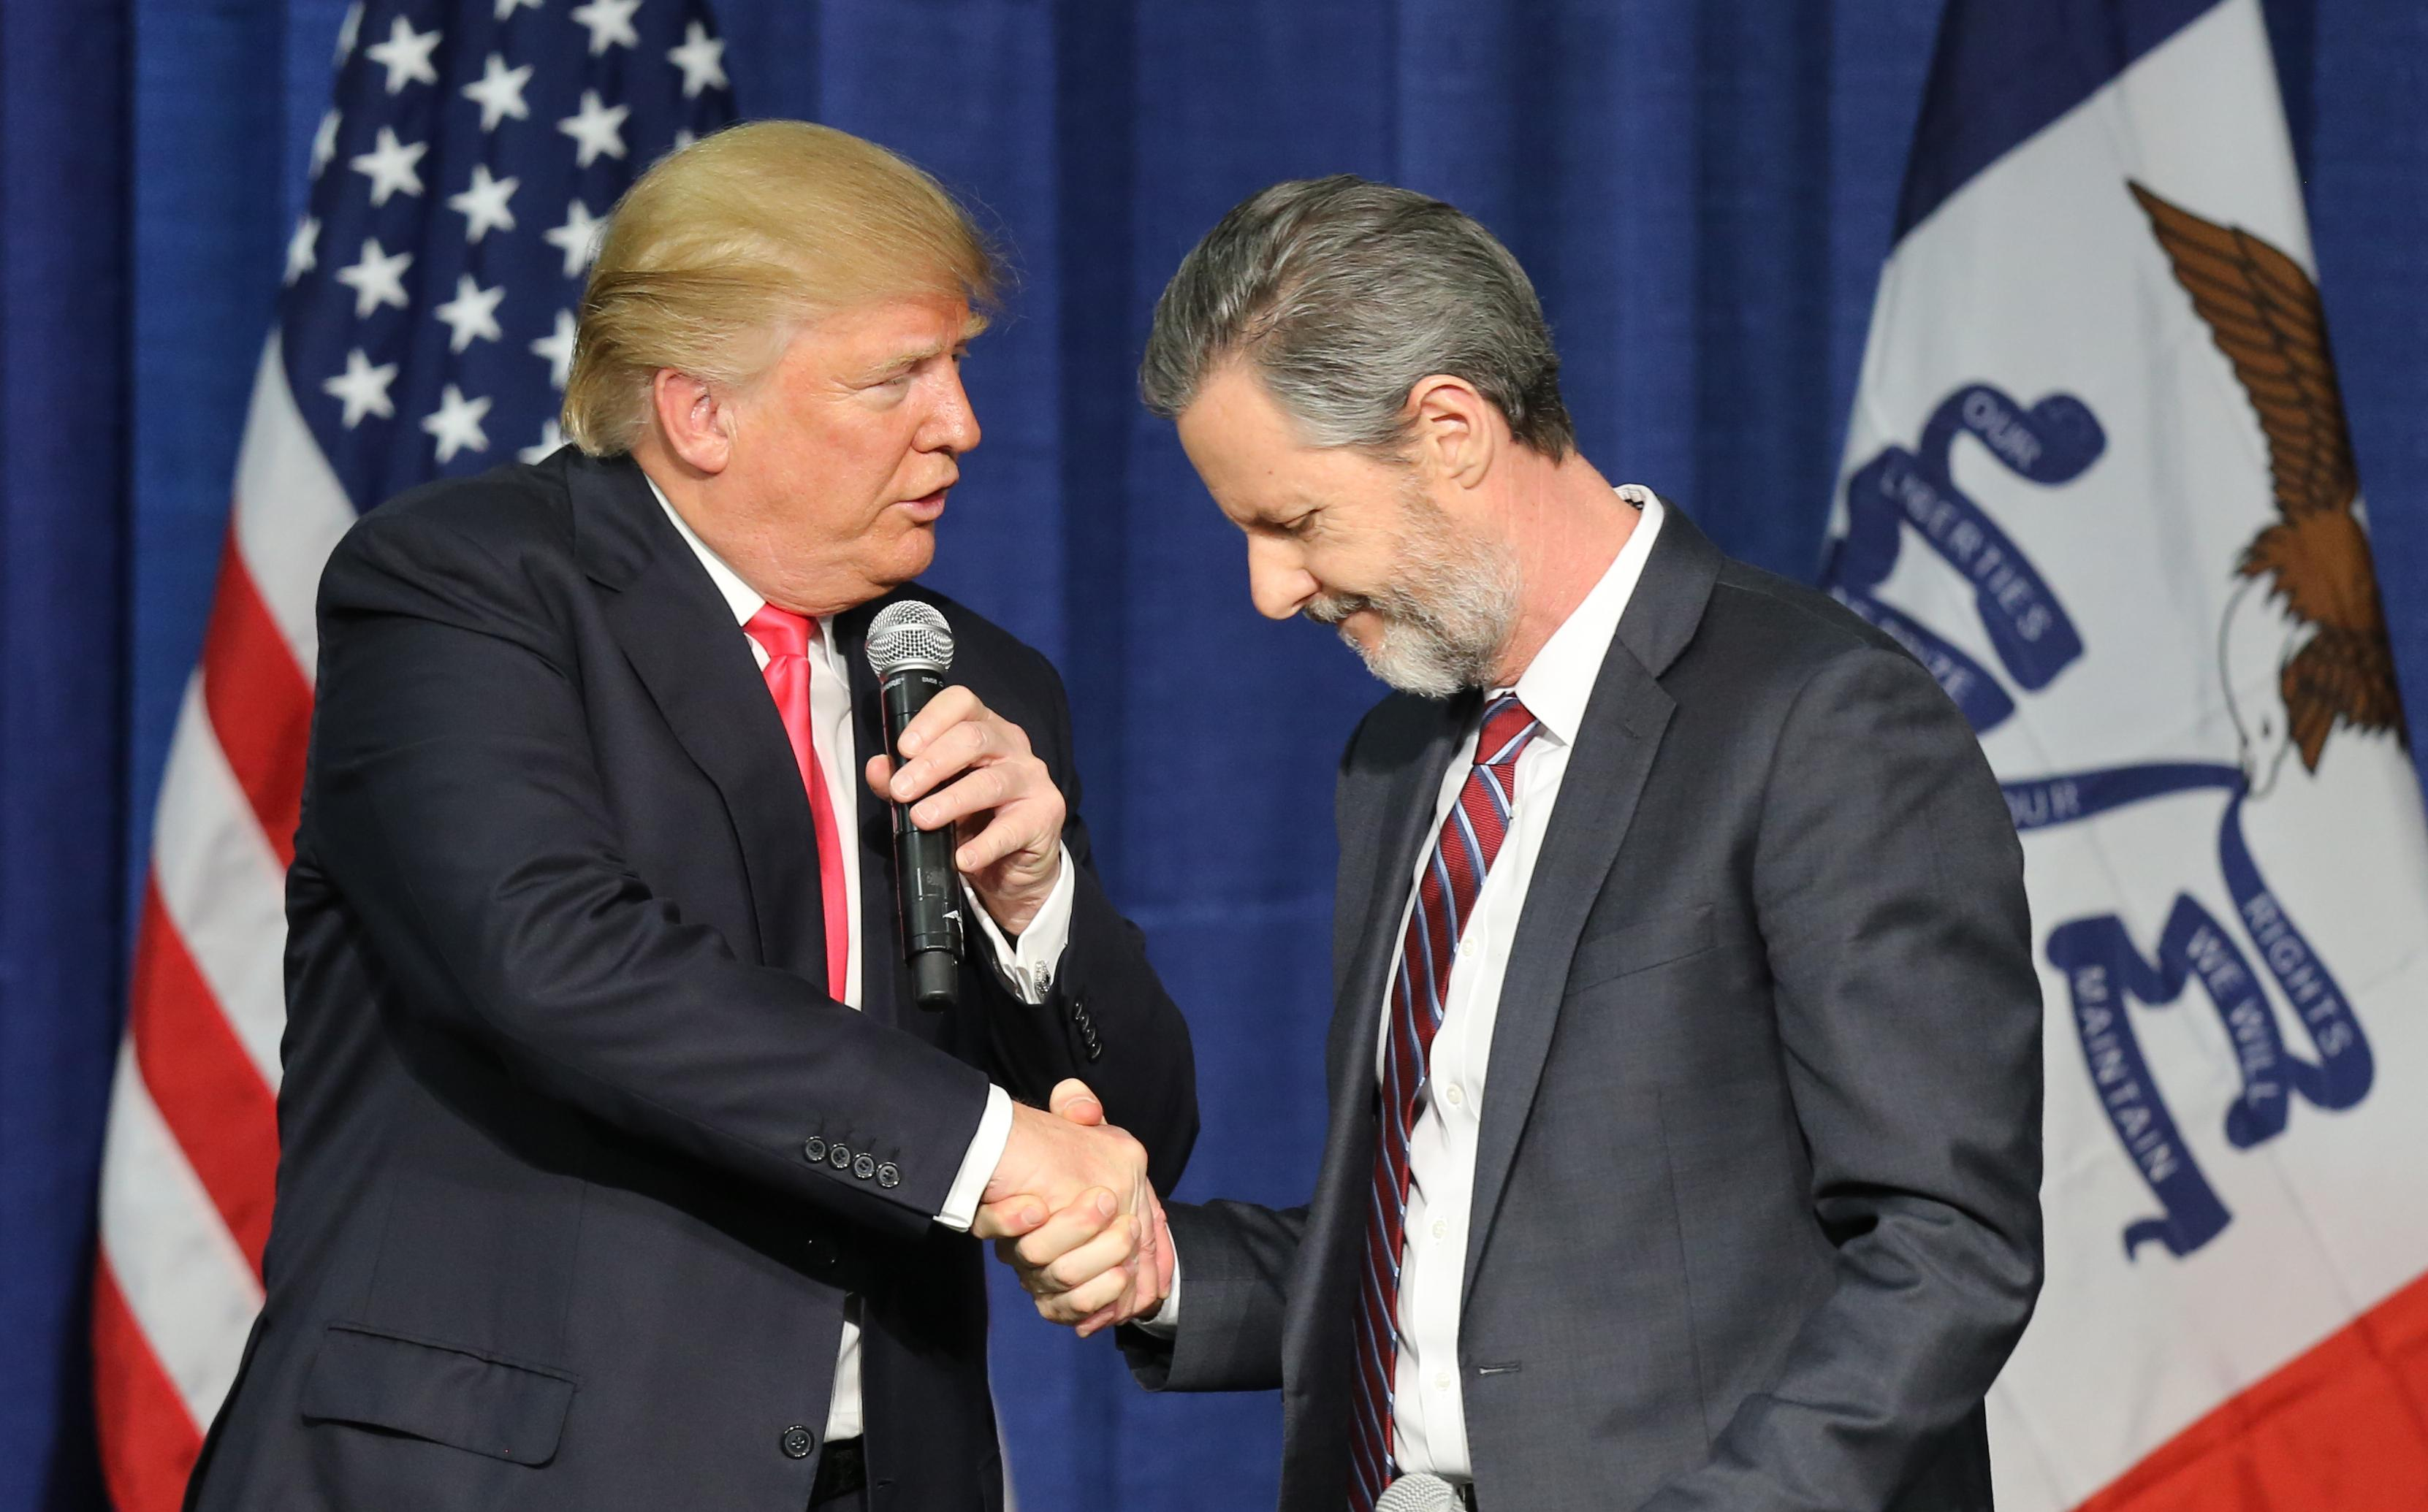 Exclusive: Trump fixer Cohen says he helped Falwell handle racy photos